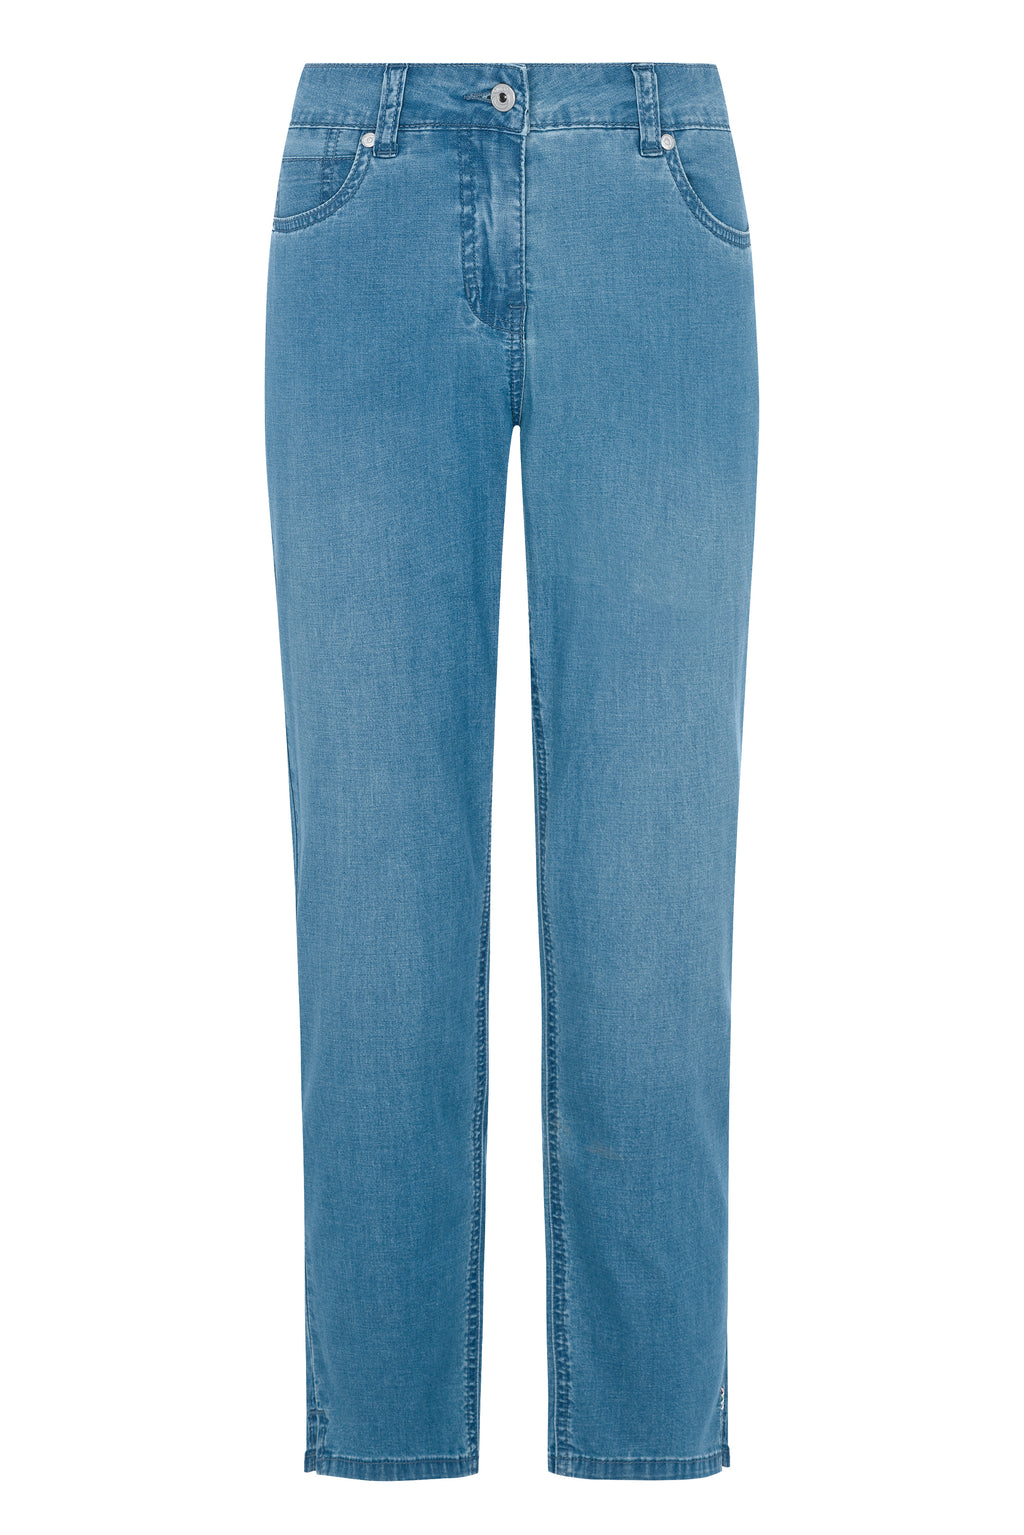 Damen Jeans Linda 7/8 light denim